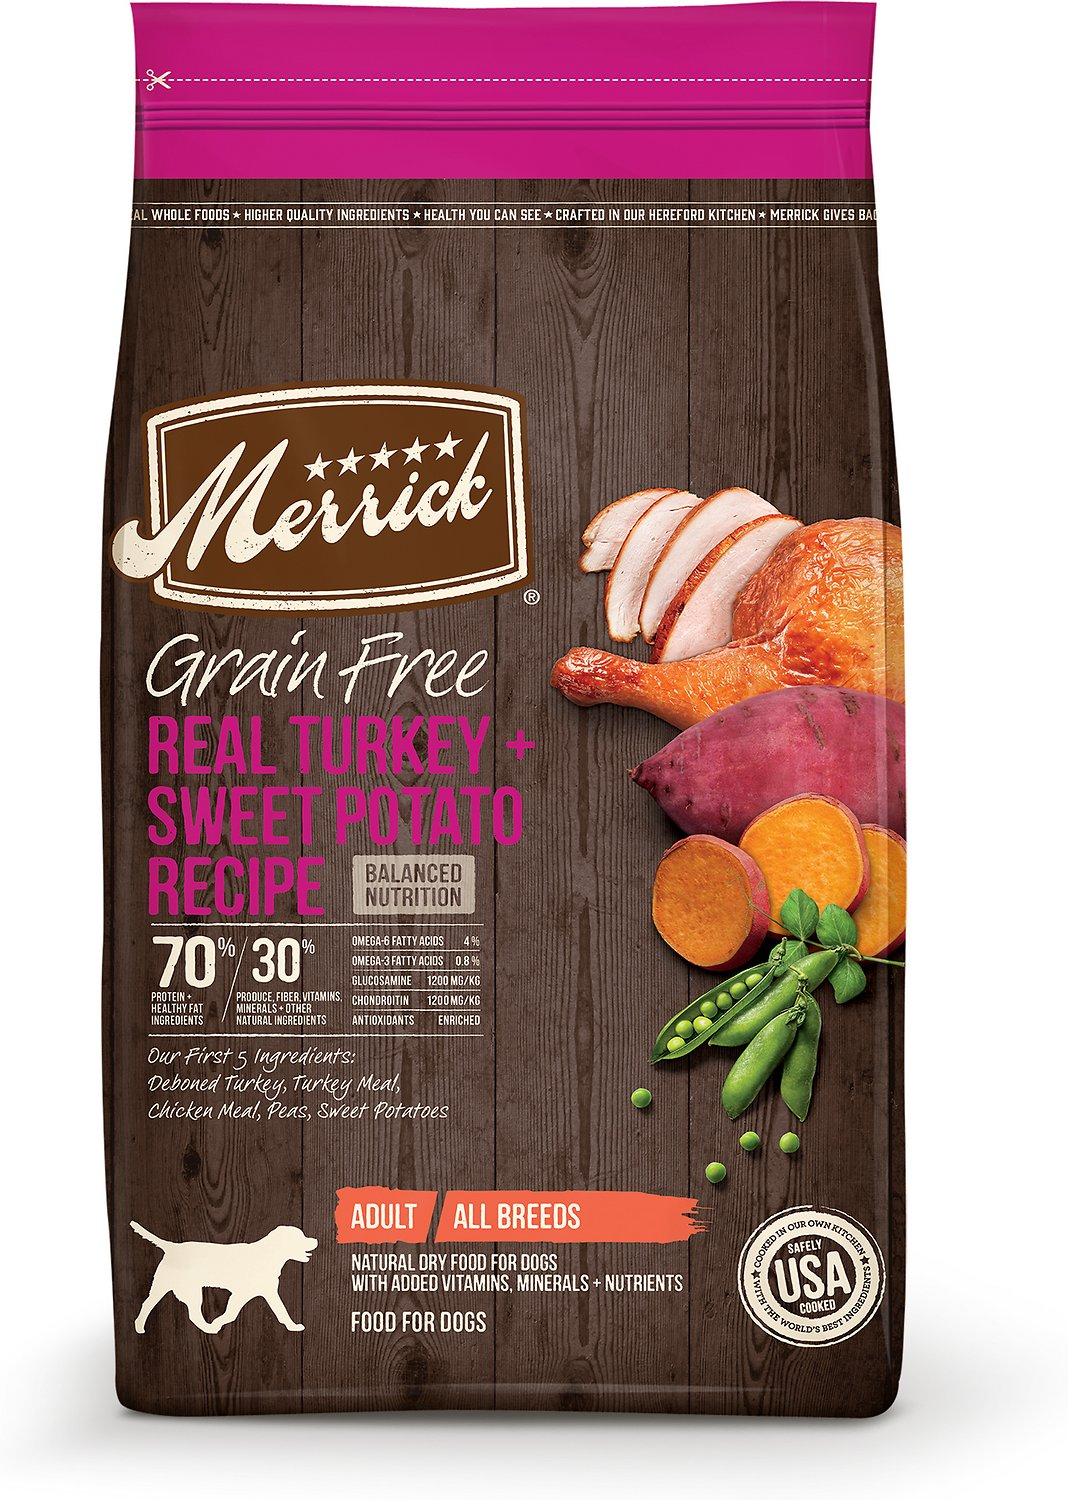 Merrick Grain-Free Real Turkey + Sweet Potato Recipe Dry Dog Food Image